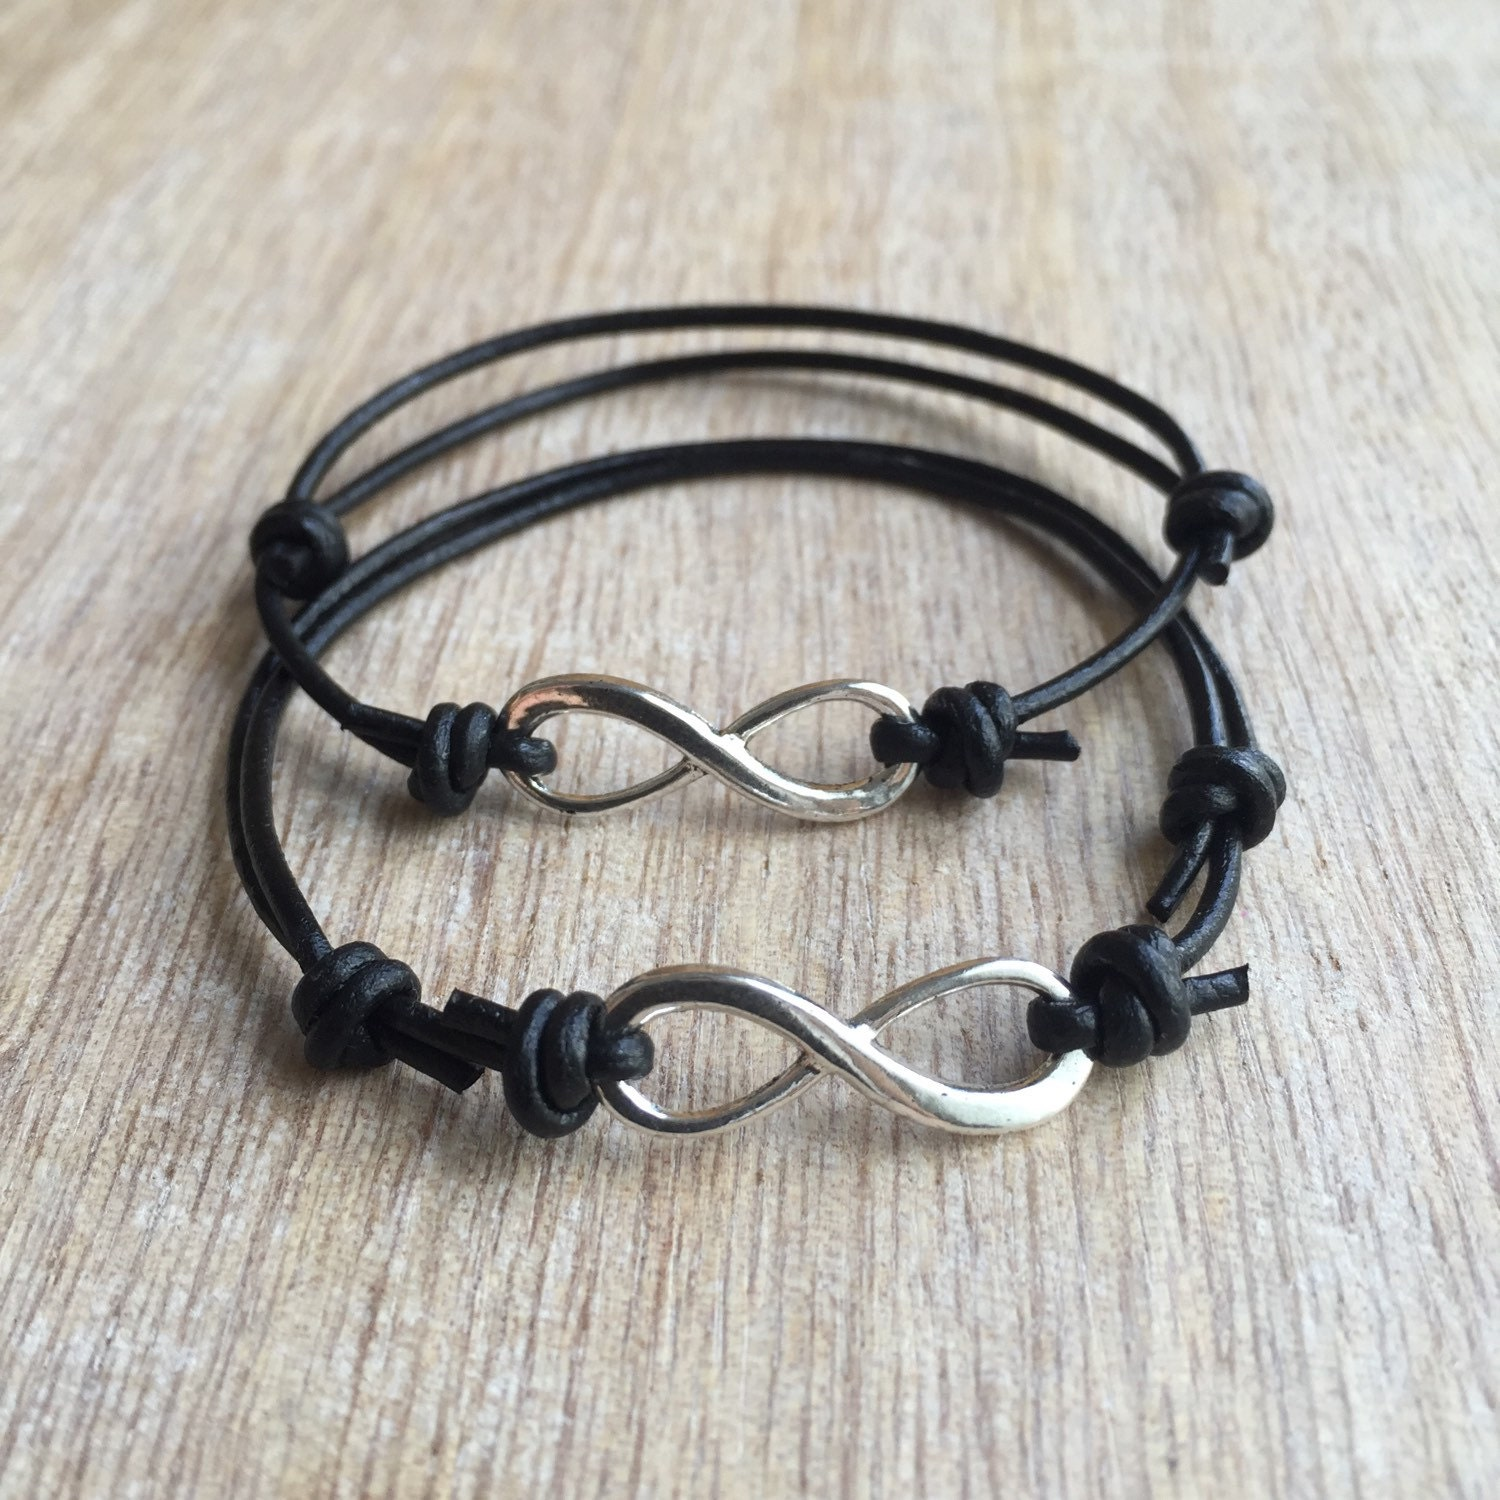 couples leather bracelets his and her bracelet black leather